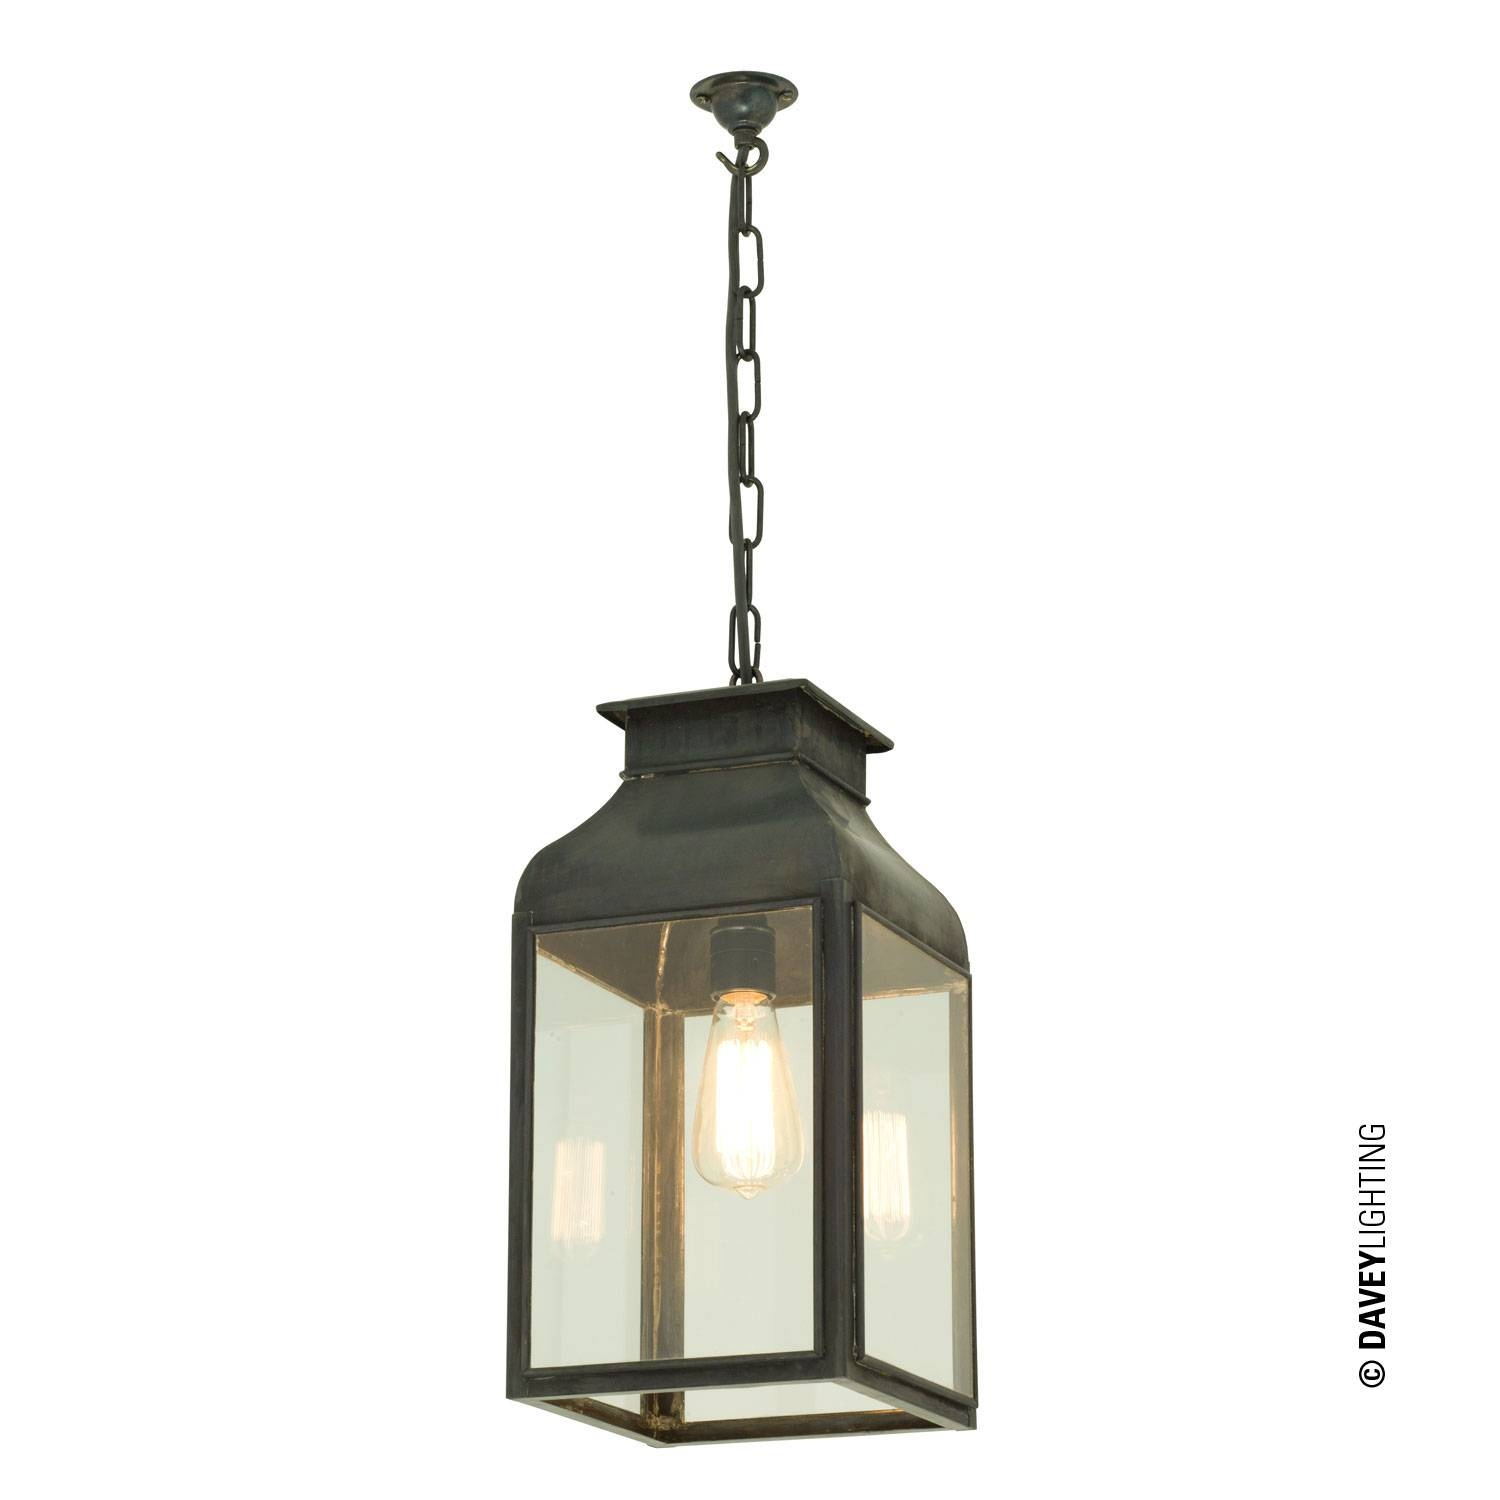 Lantern Style Pendant Lighting (View 7 of 15)